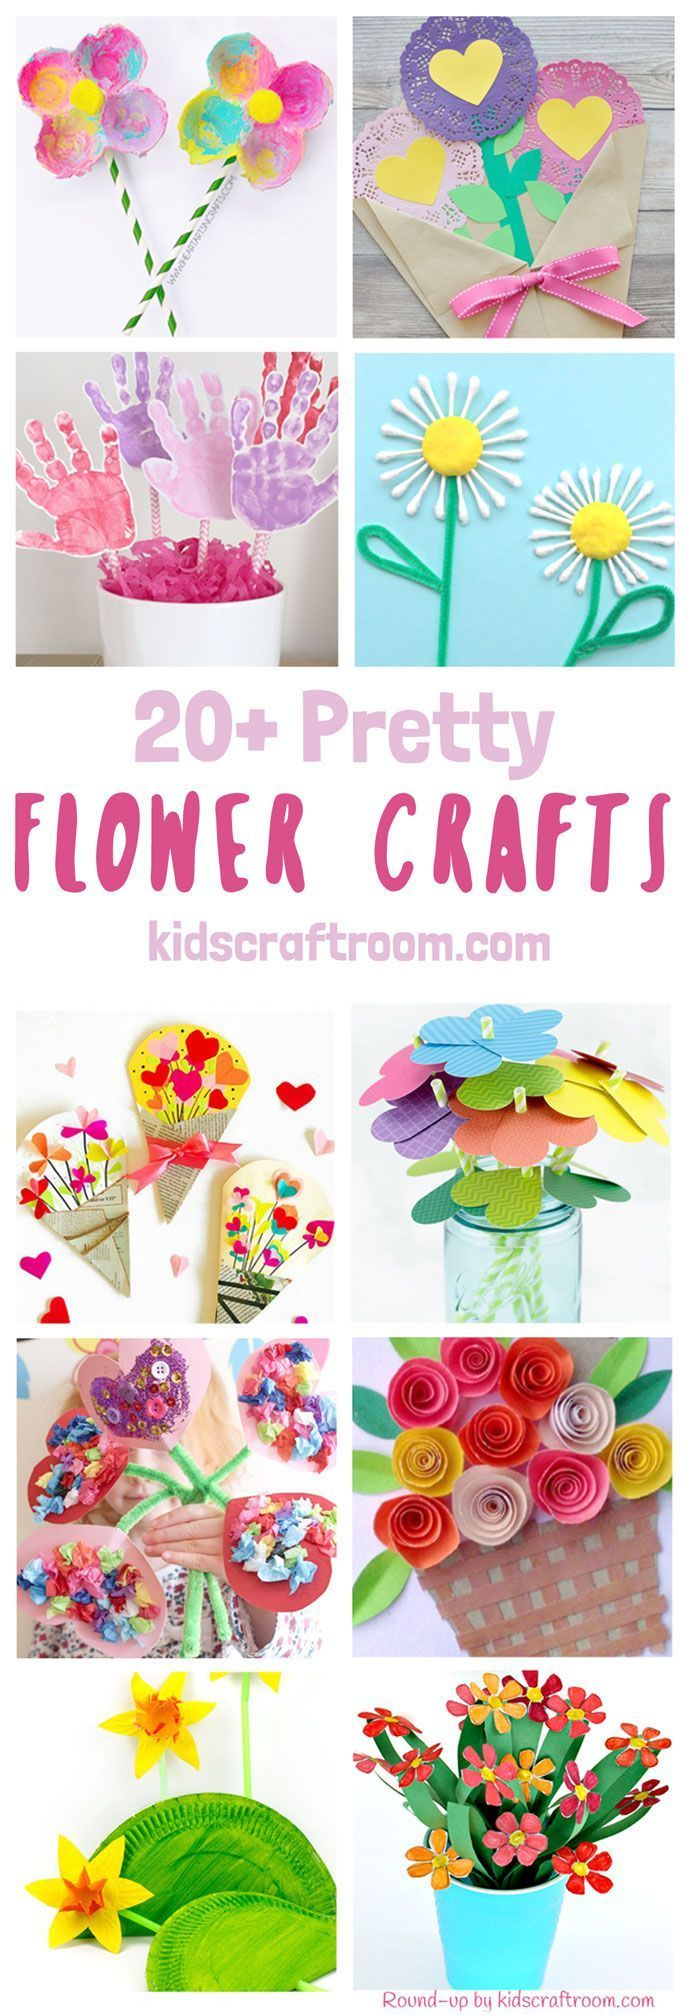 Pretty Flower Crafts For Kids